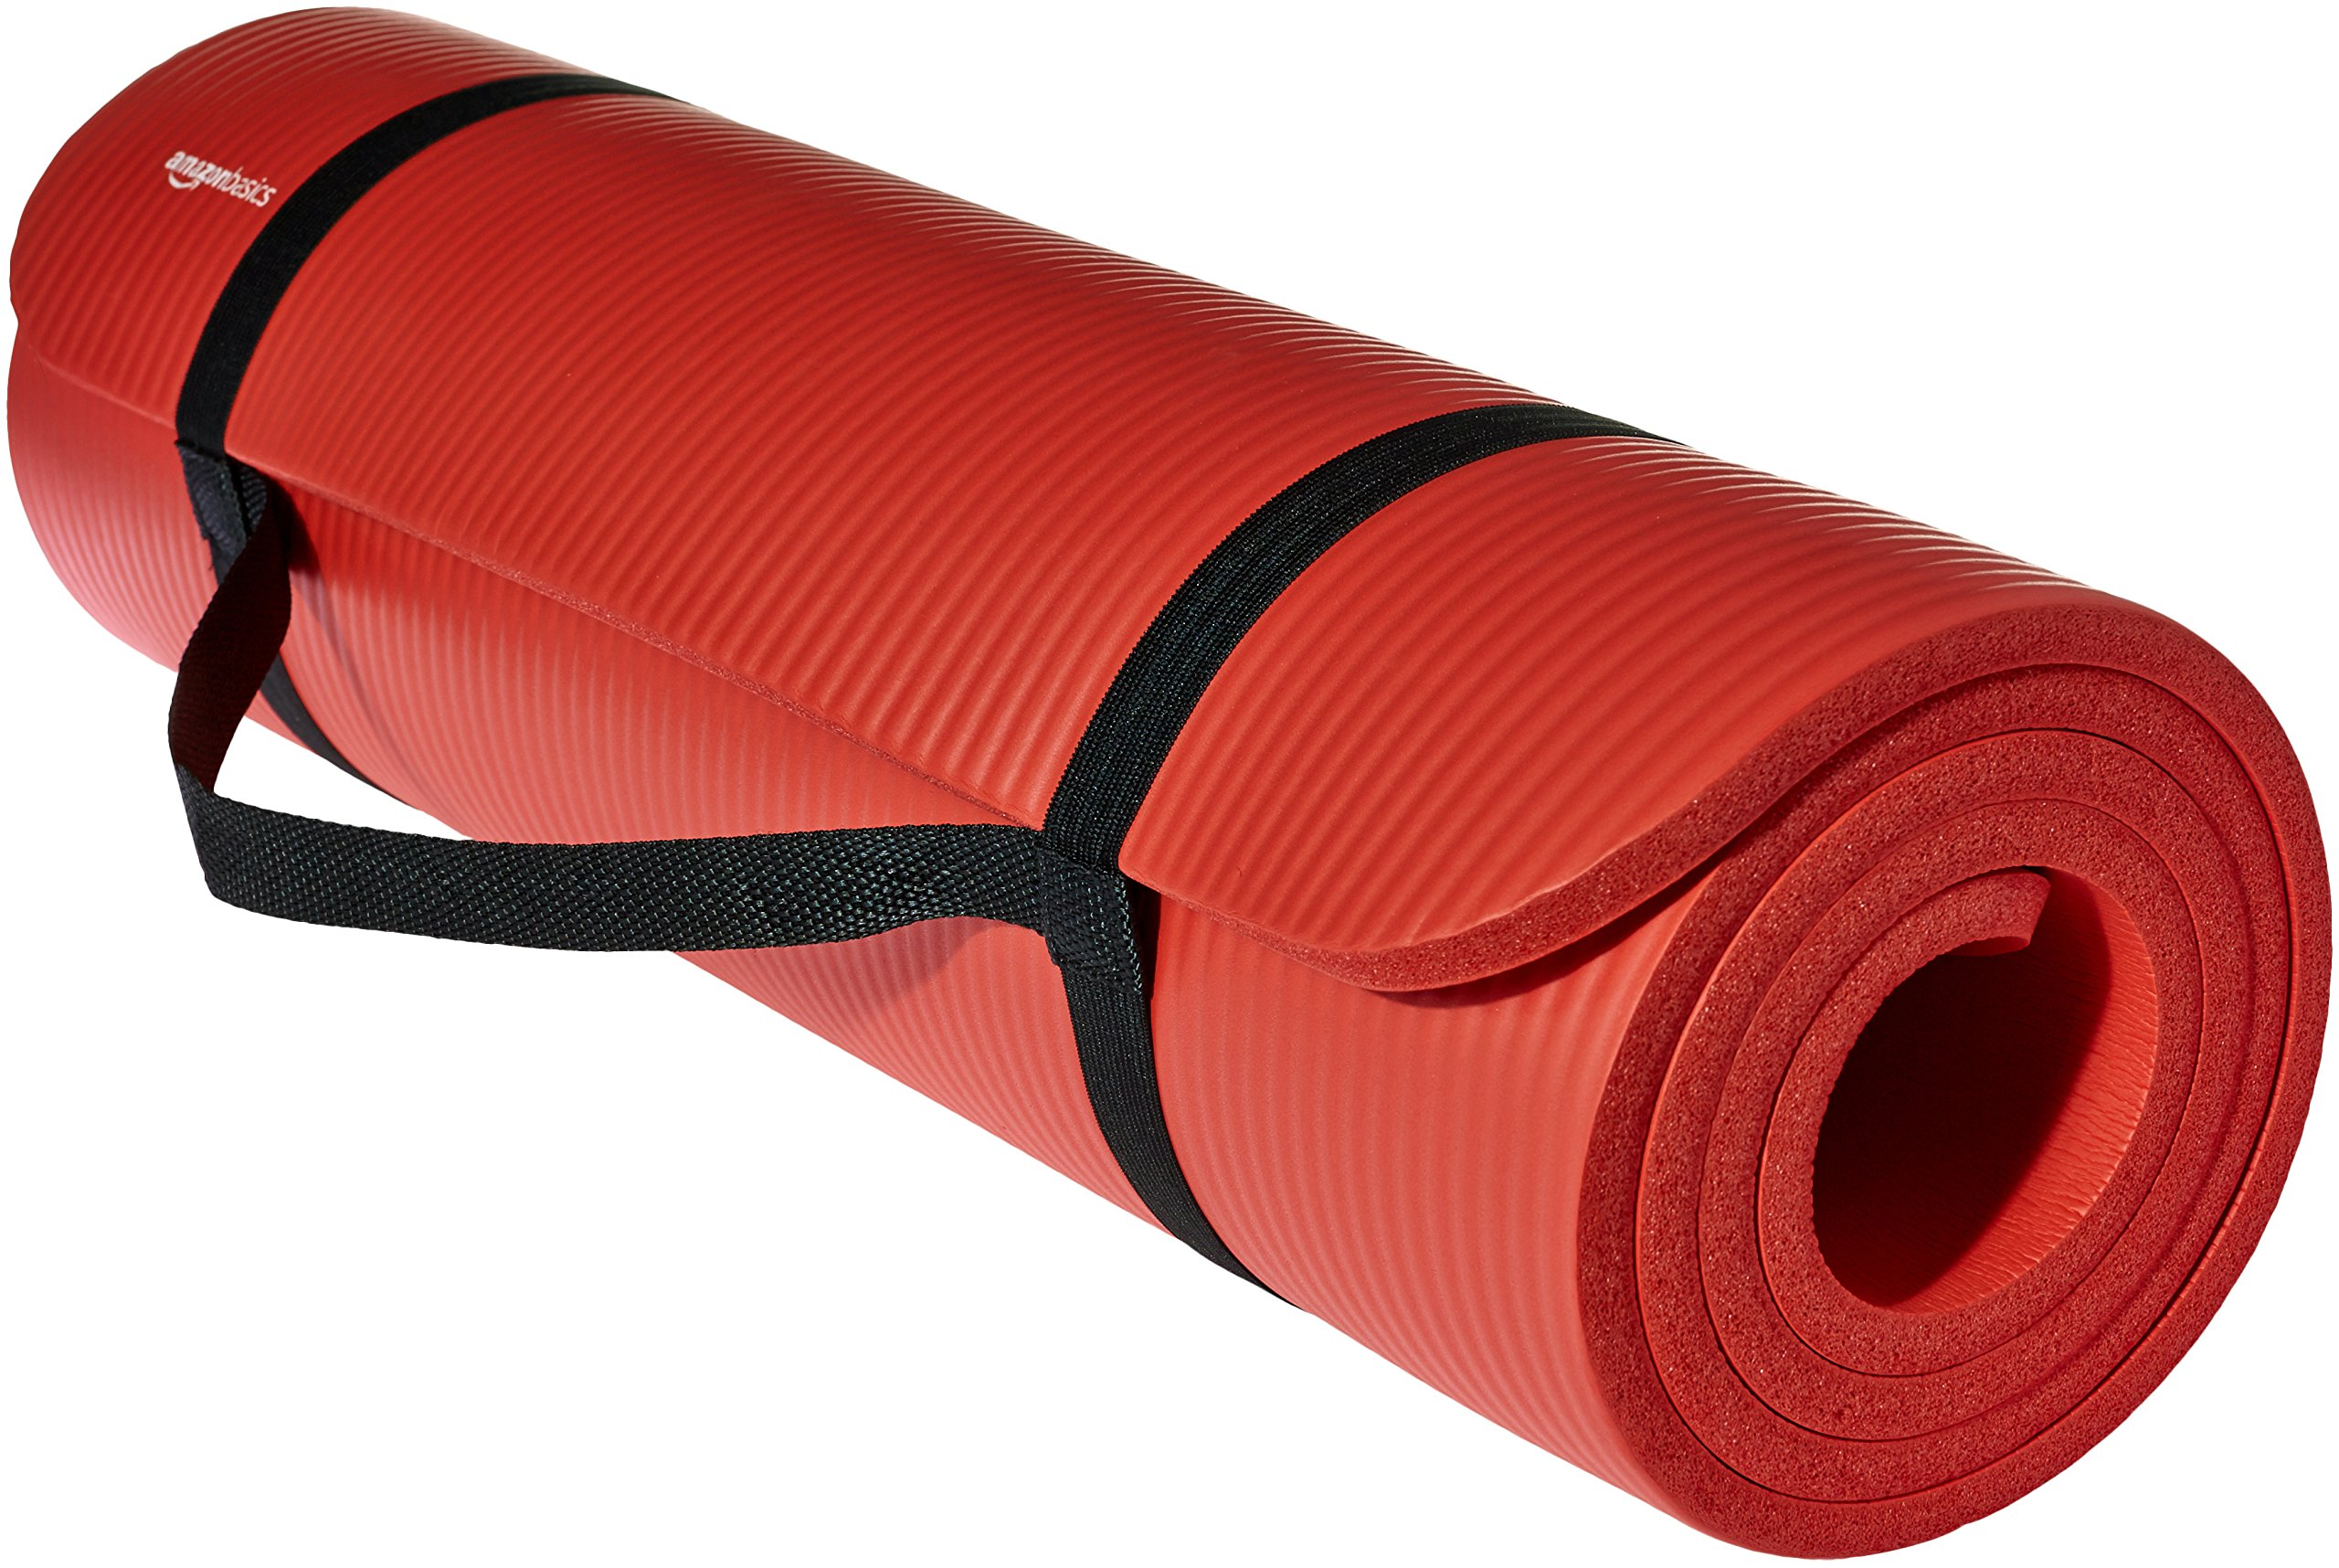 AmazonBasics Extra Thick Exercise Yoga Gym Floor Mat with Carrying Strap - 74 x 24 x .5 Inches, Red